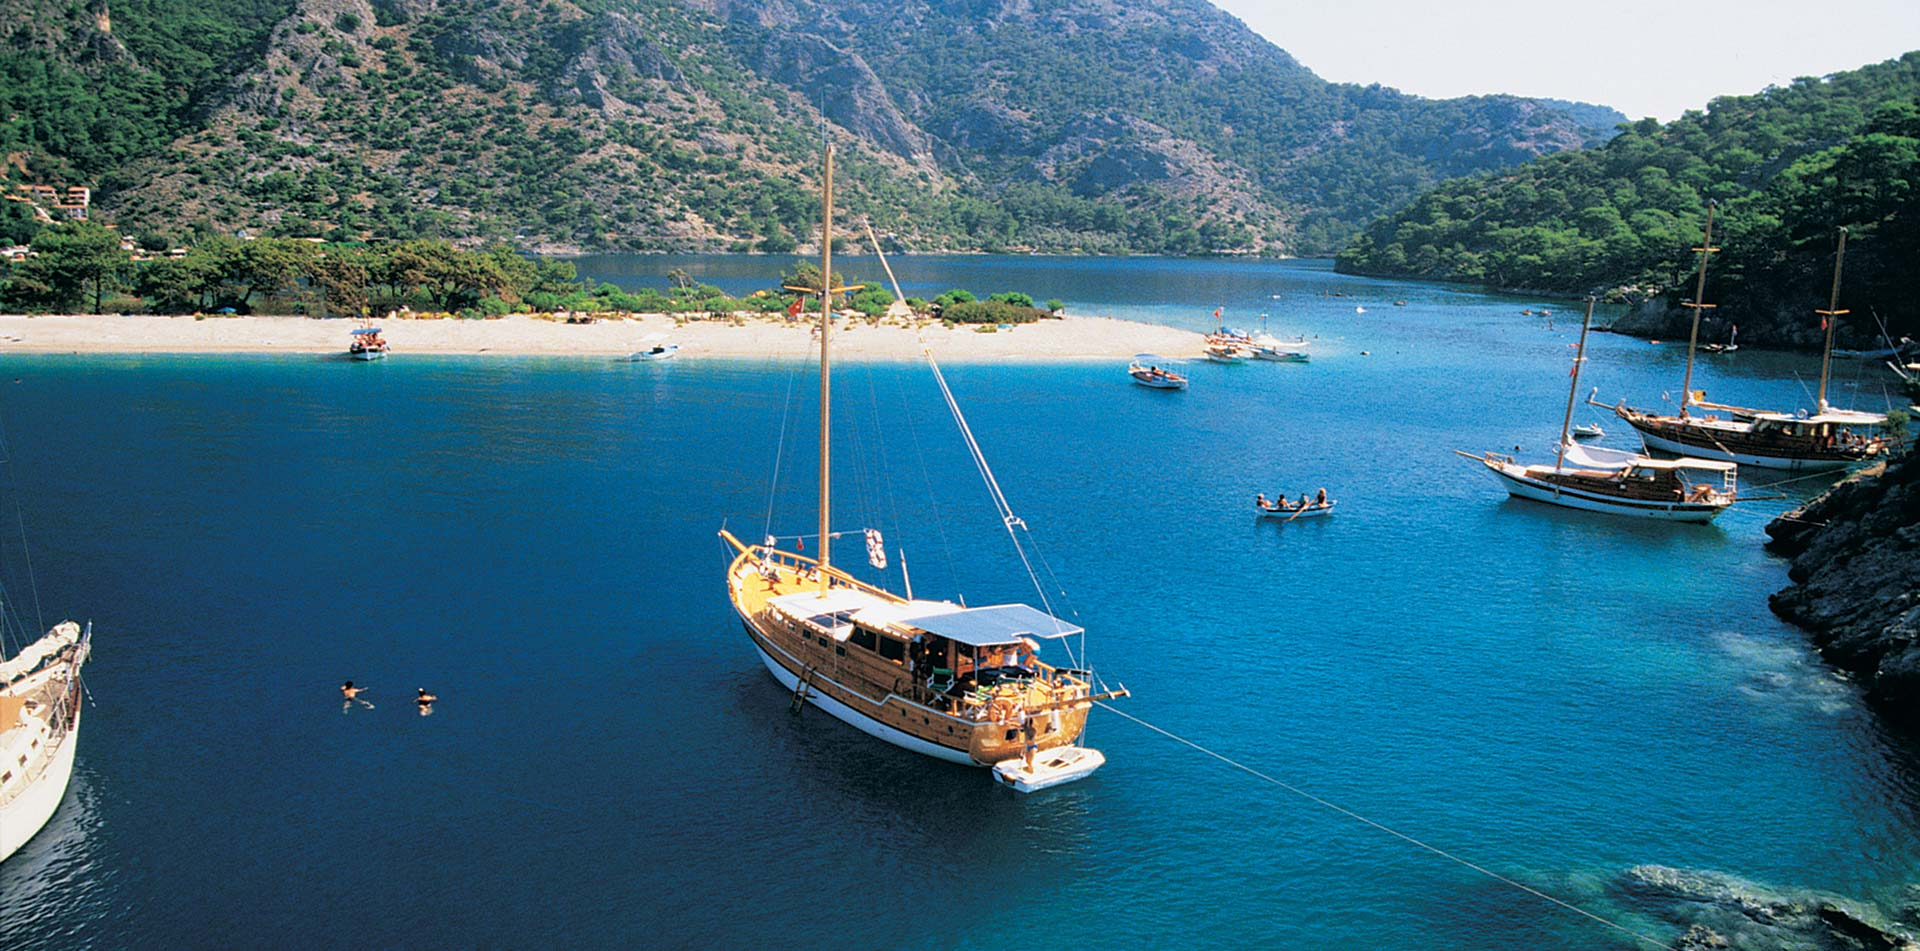 Turkey sailing gulet boat in waters of Turkish harbor - luxury vacation destinations